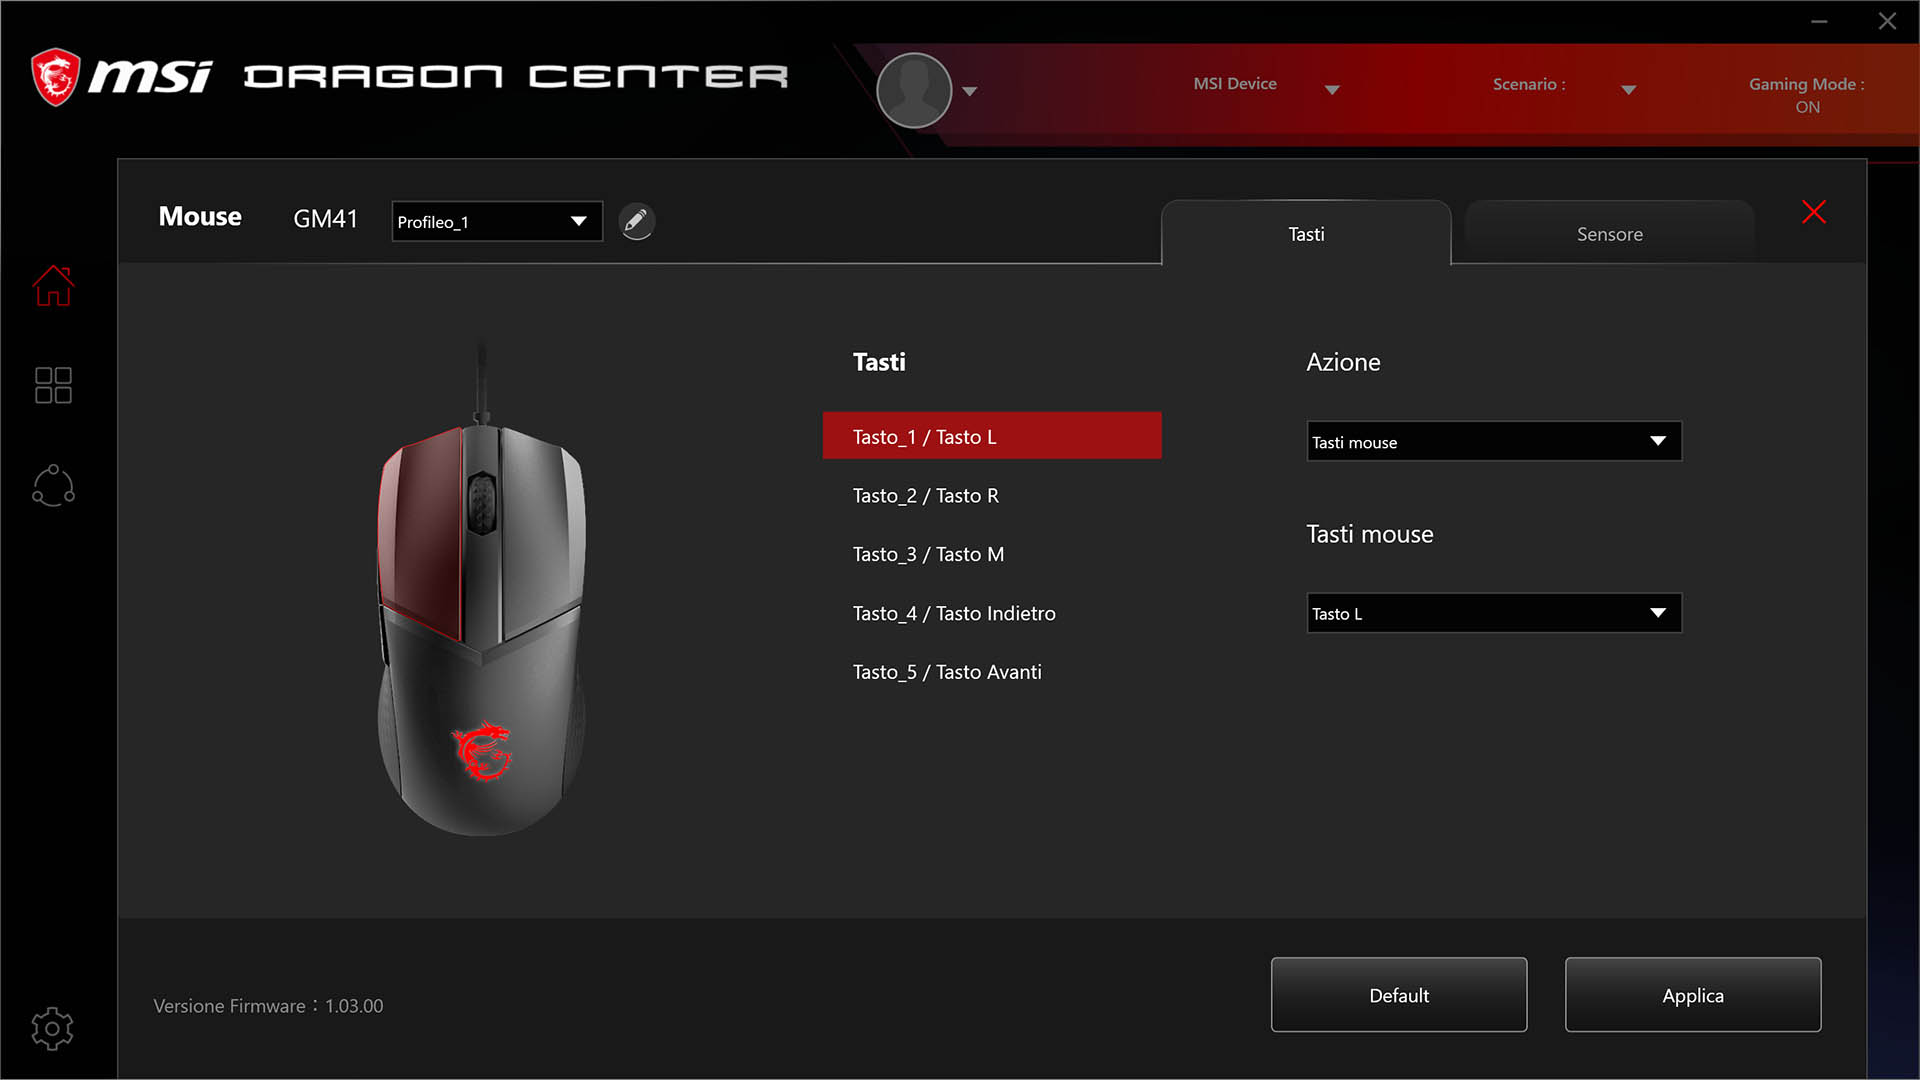 MSI-Mouse-Clutch-GM41-Lightweight-Review